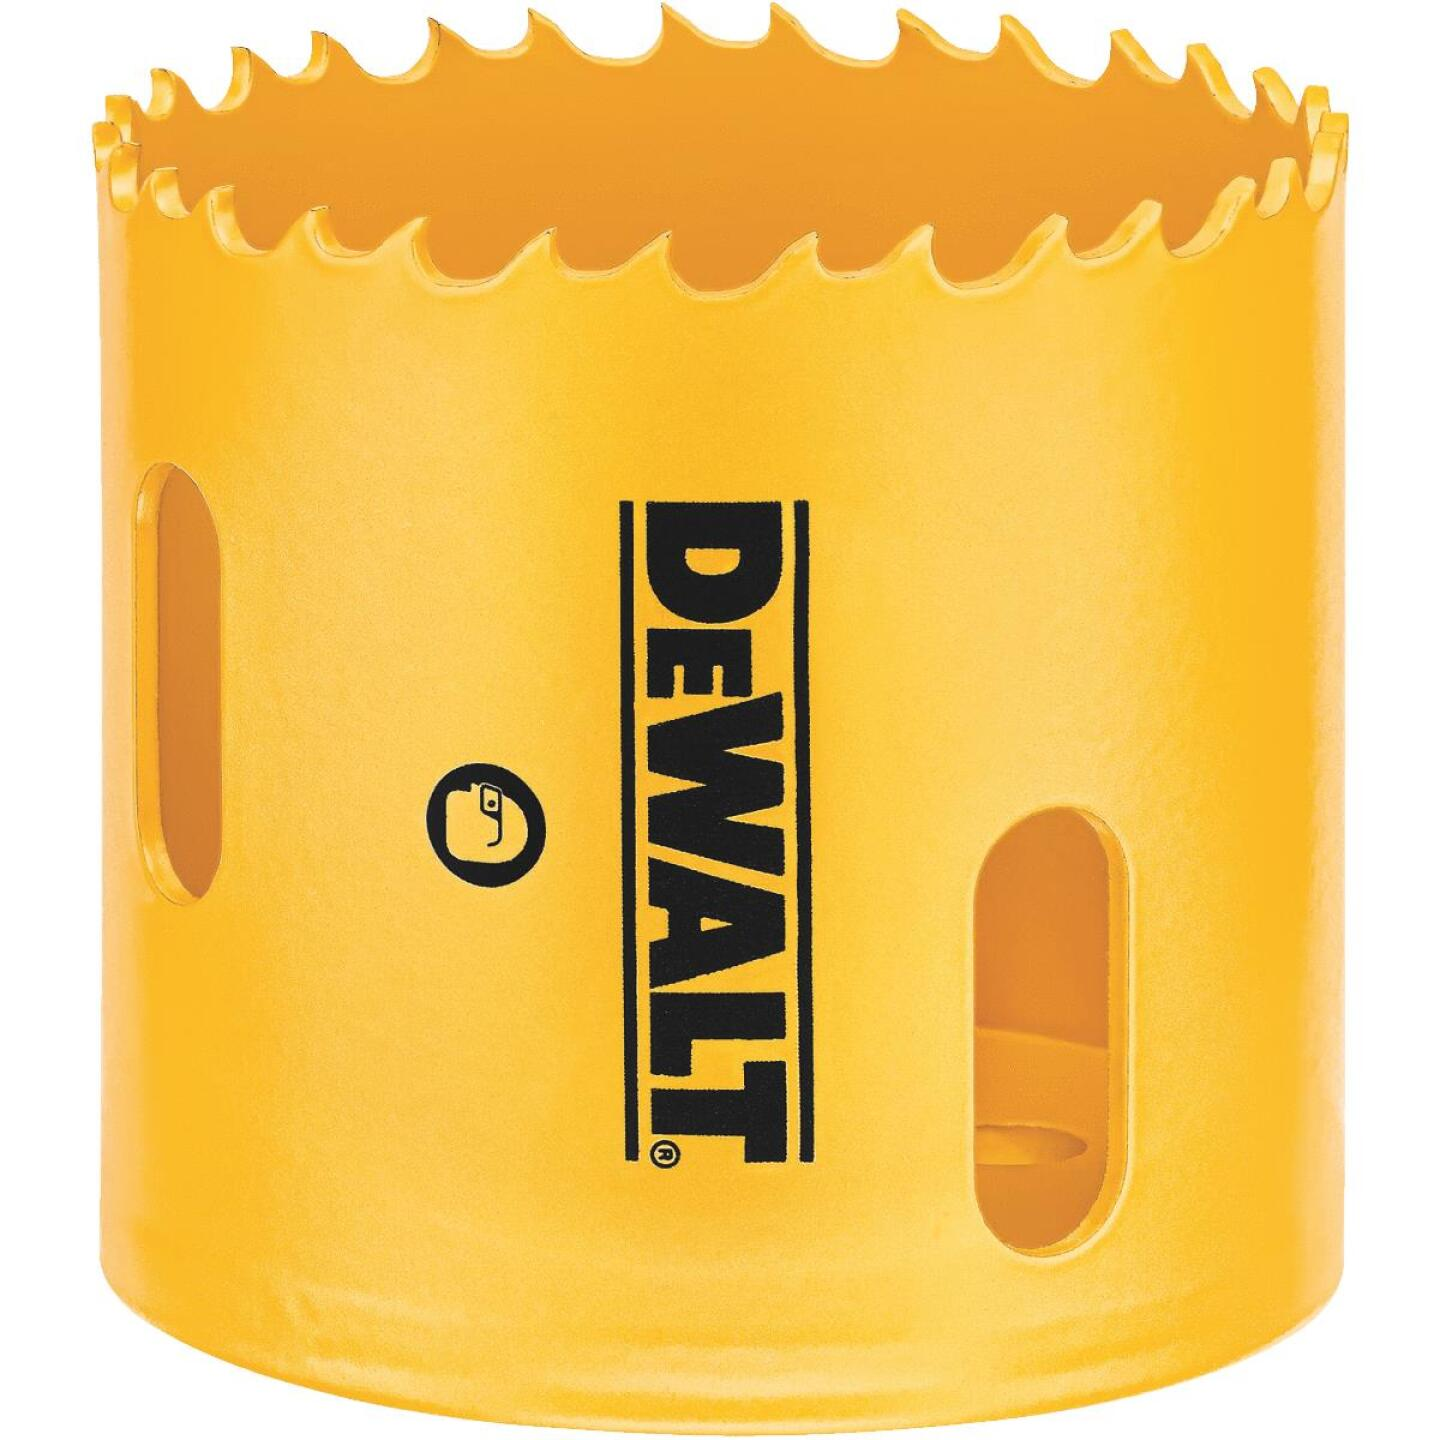 DeWalt 2 In. Bi-Metal Hole Saw Image 1